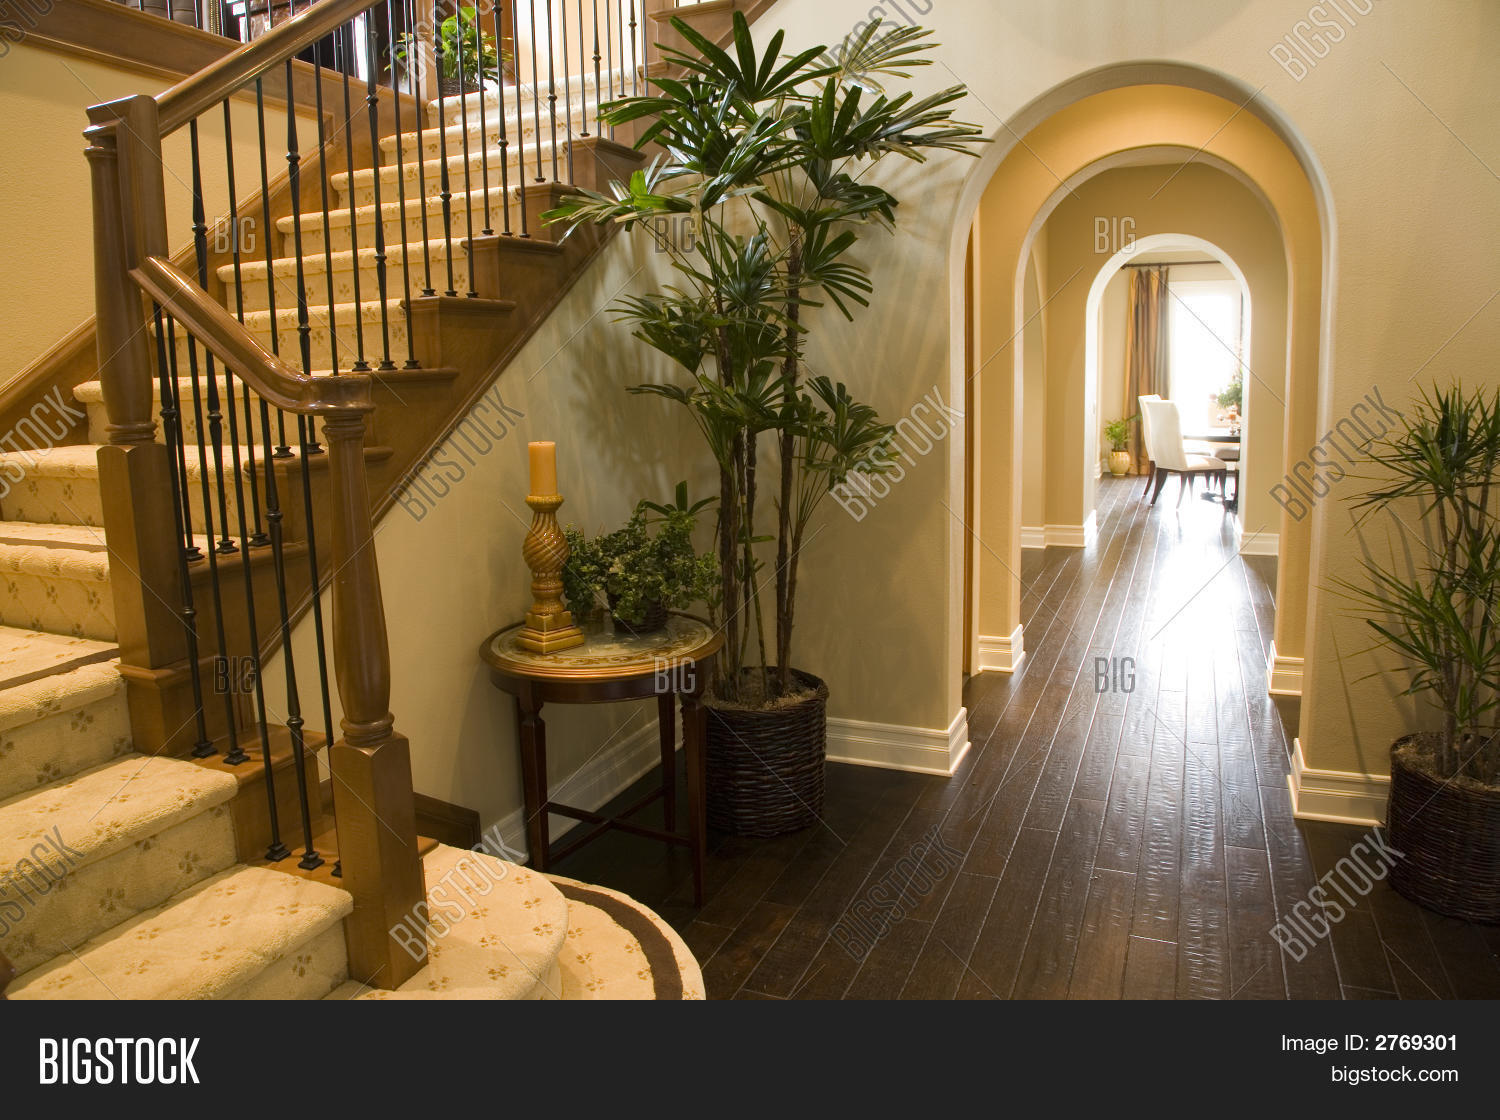 Stupendous Luxury Home Hallway Stock Photo Stock Images Bigstock Largest Home Design Picture Inspirations Pitcheantrous